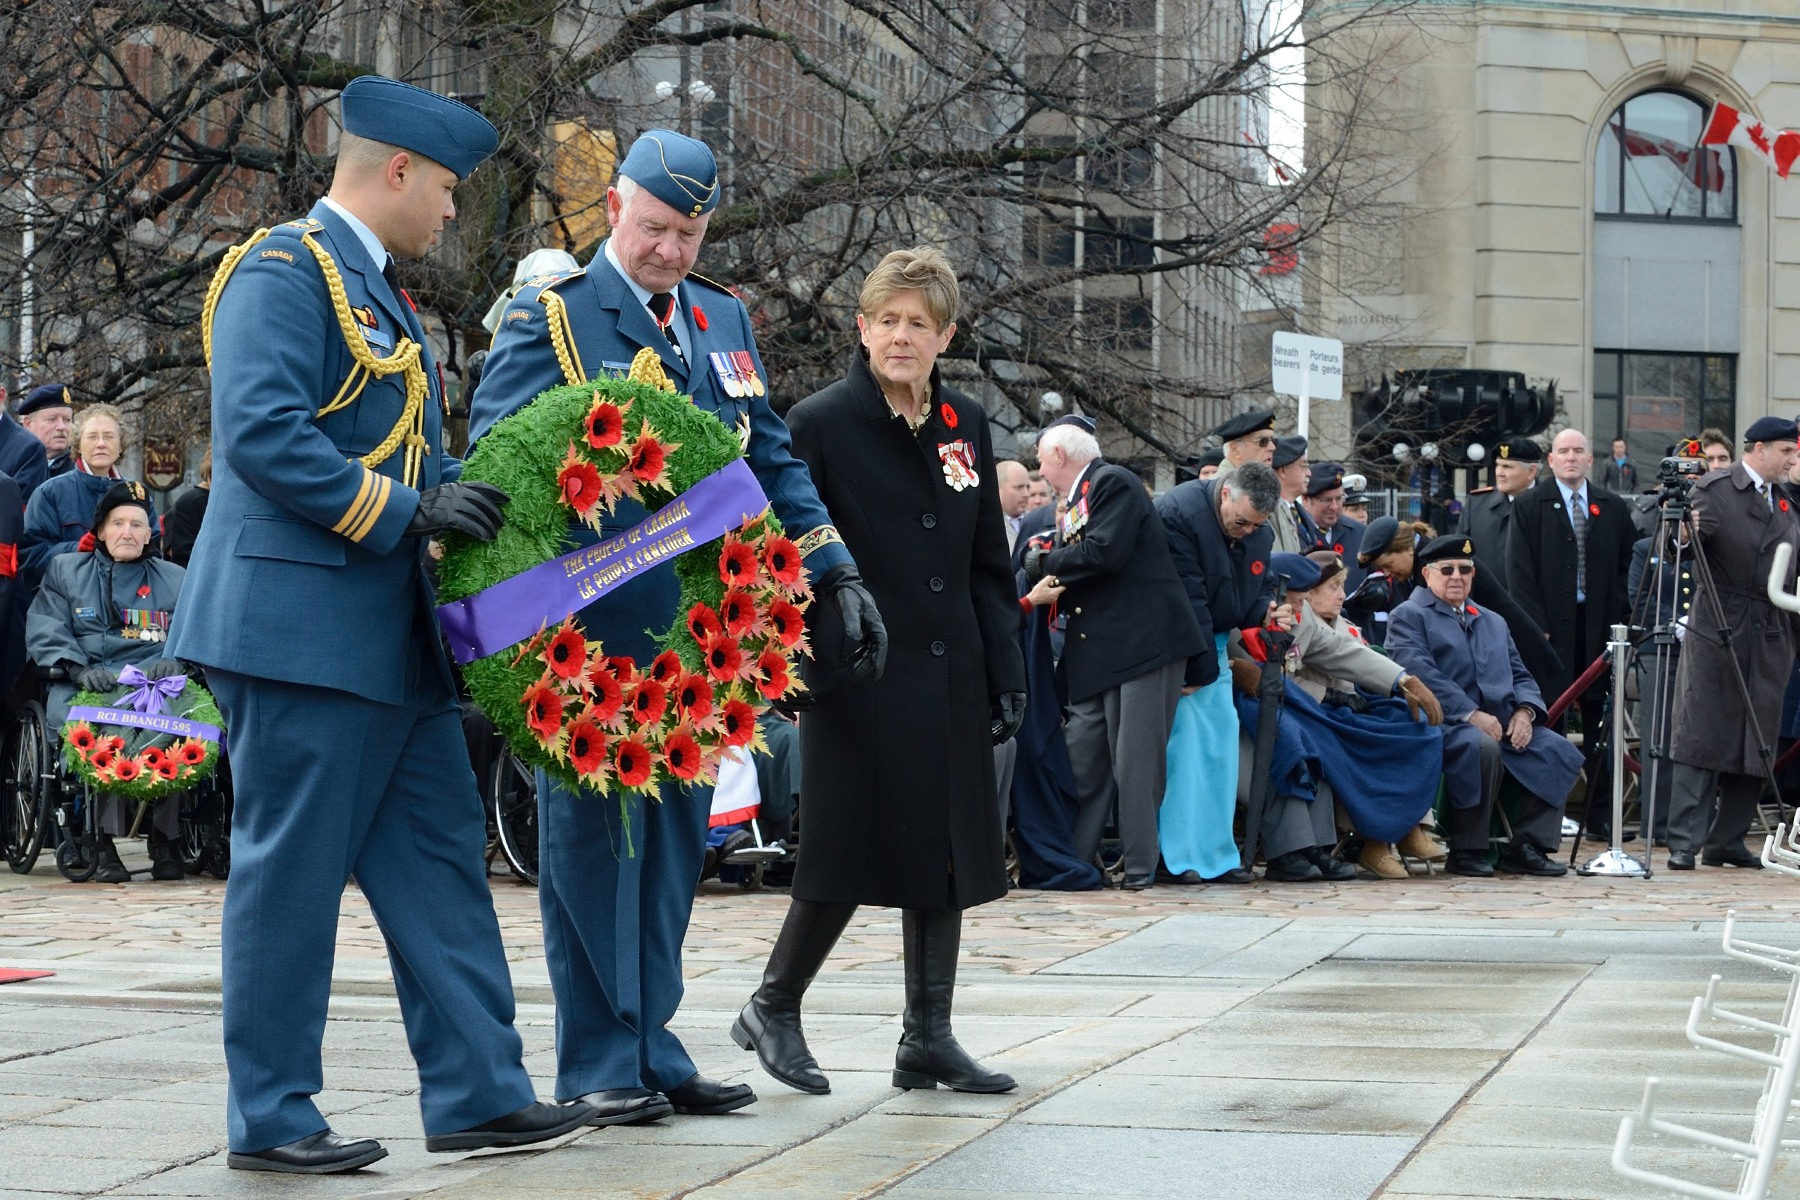 During the ceremony, Their Excellencies were the first ones to lay a wreath on behalf of the people of Canada.